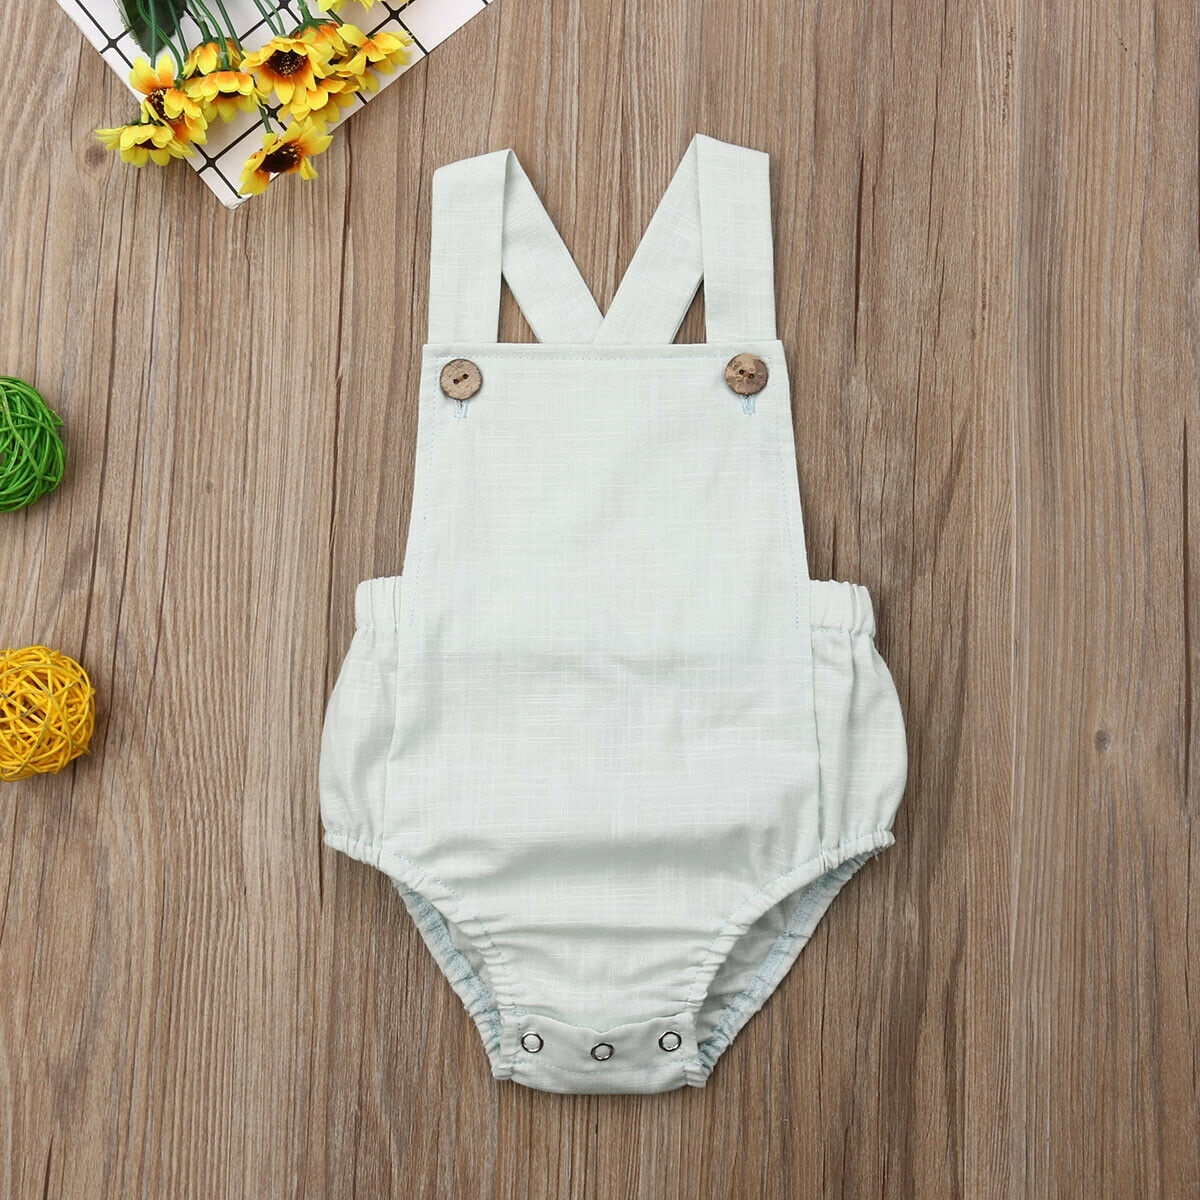 Newborn Infant Baby Boy Girl One-Piece Romper Bodysuit Sunsuit Summer Outfit Set Clothes